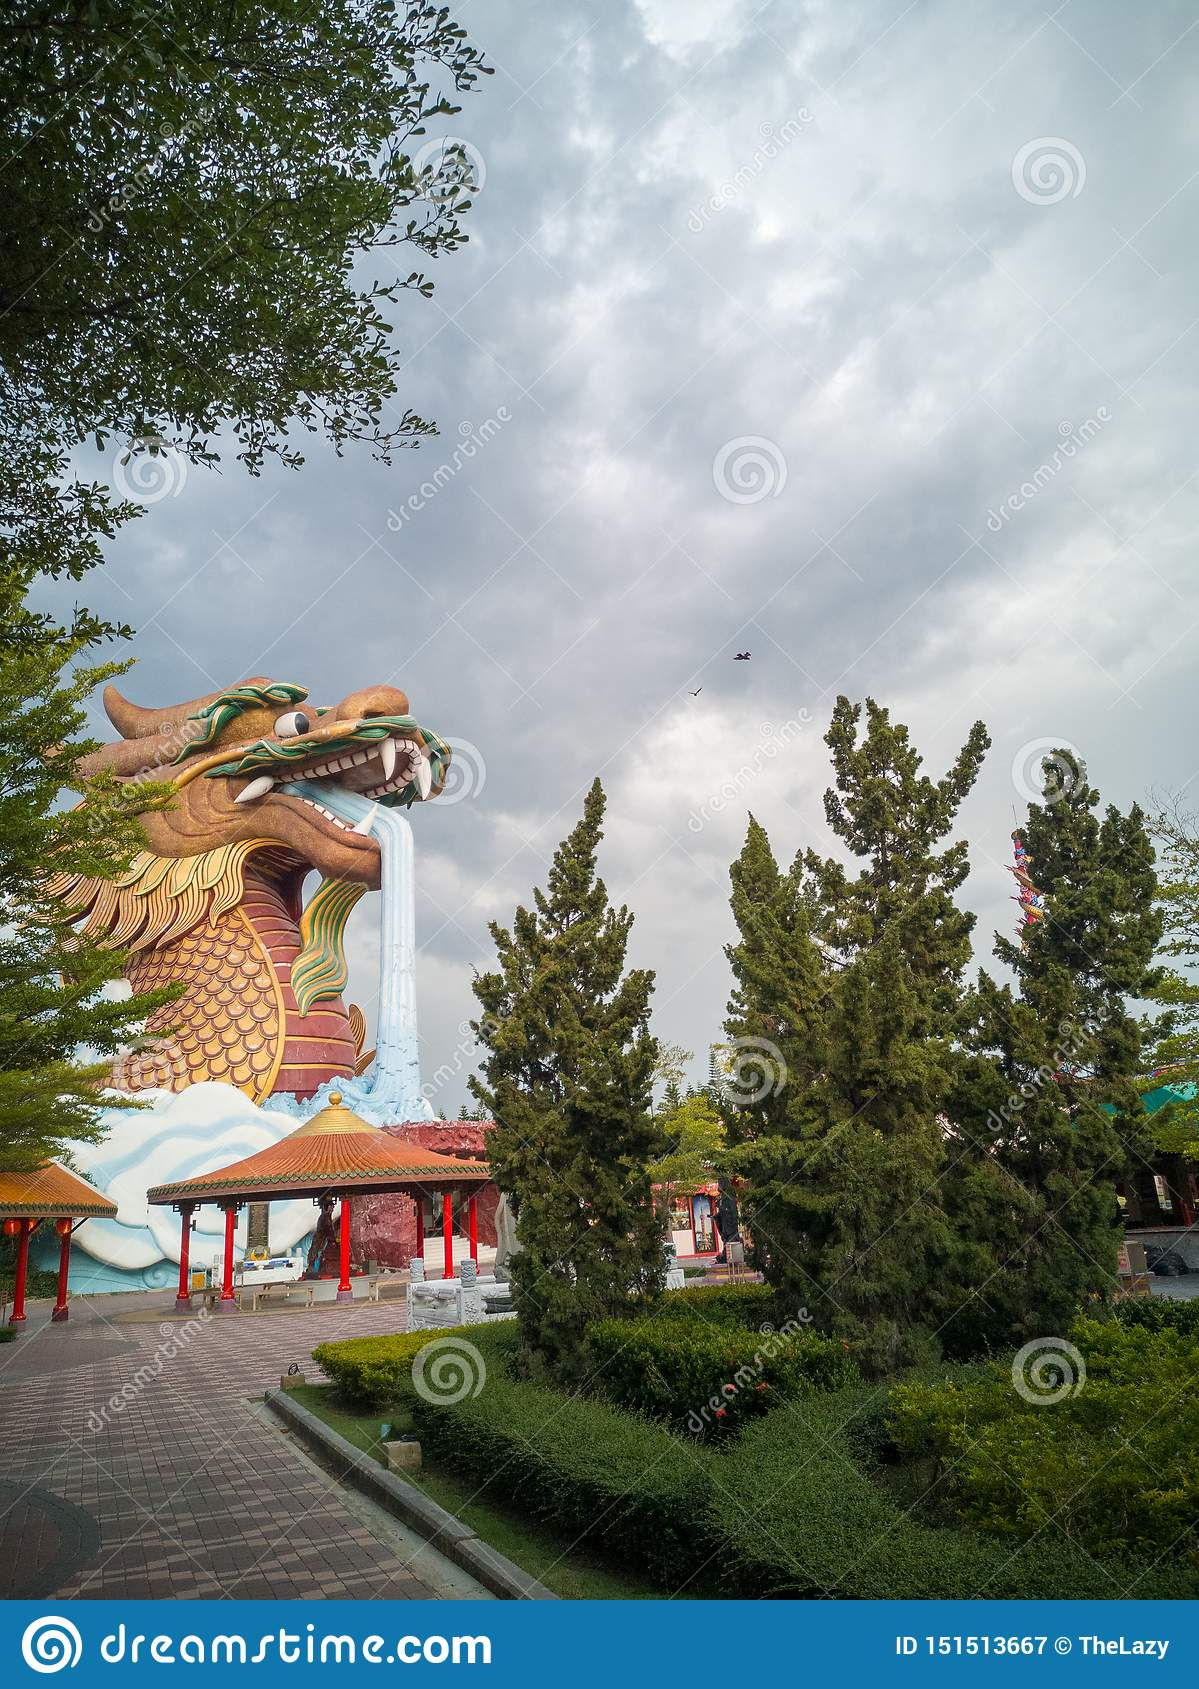 A large dragon building in the garden while the sky is near to rain